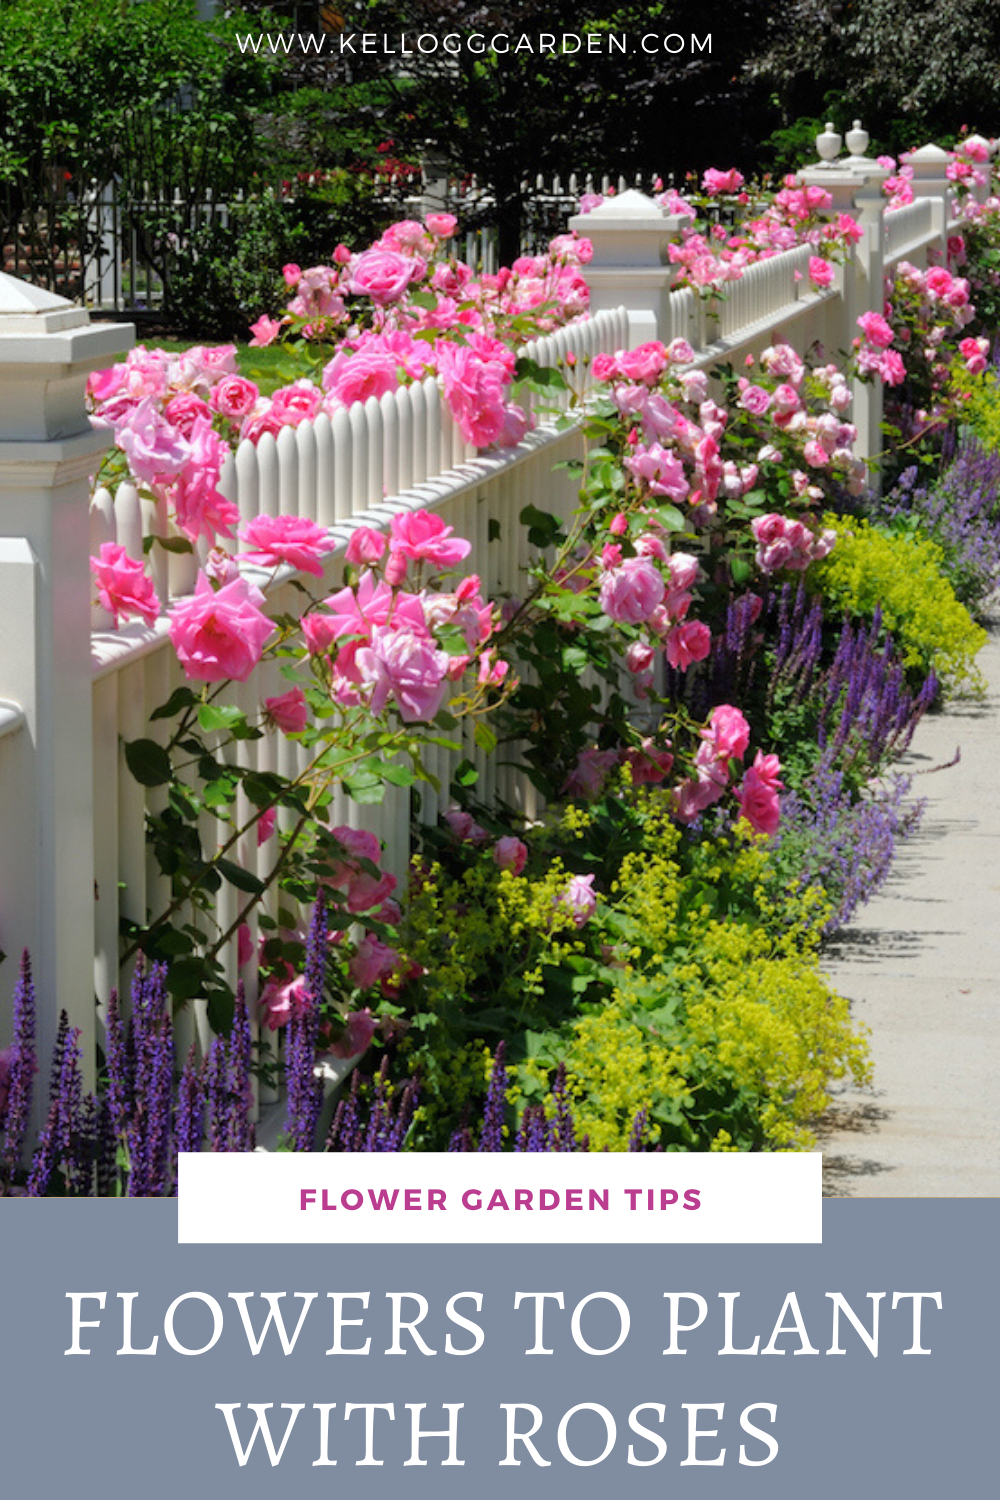 479eb133a33ae47b1af0f06dc6e62cf4 - Pictures Of Rose Gardens With Companion Plants